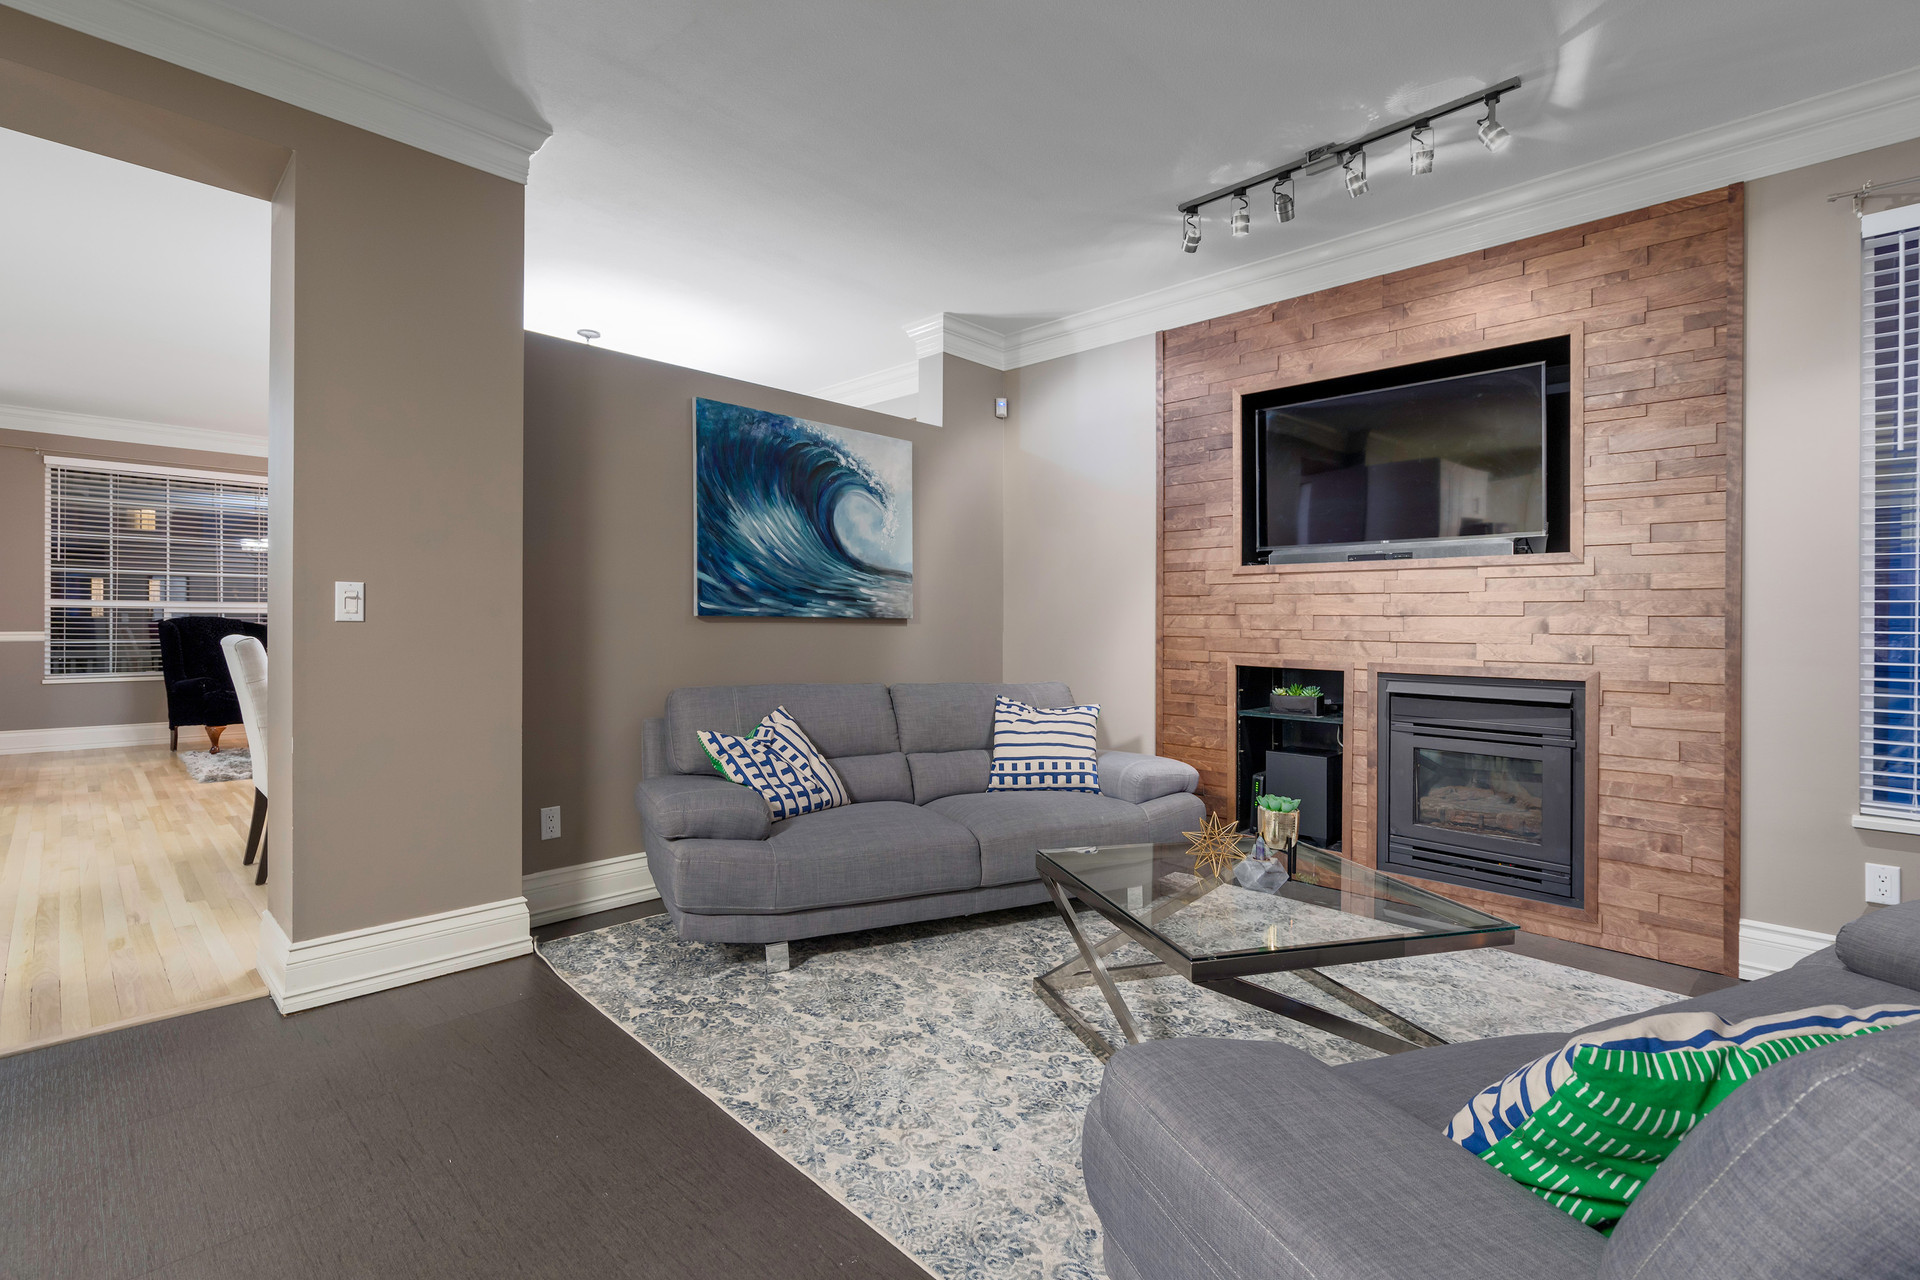 18433-65-Ave-360hometours-08.jpg